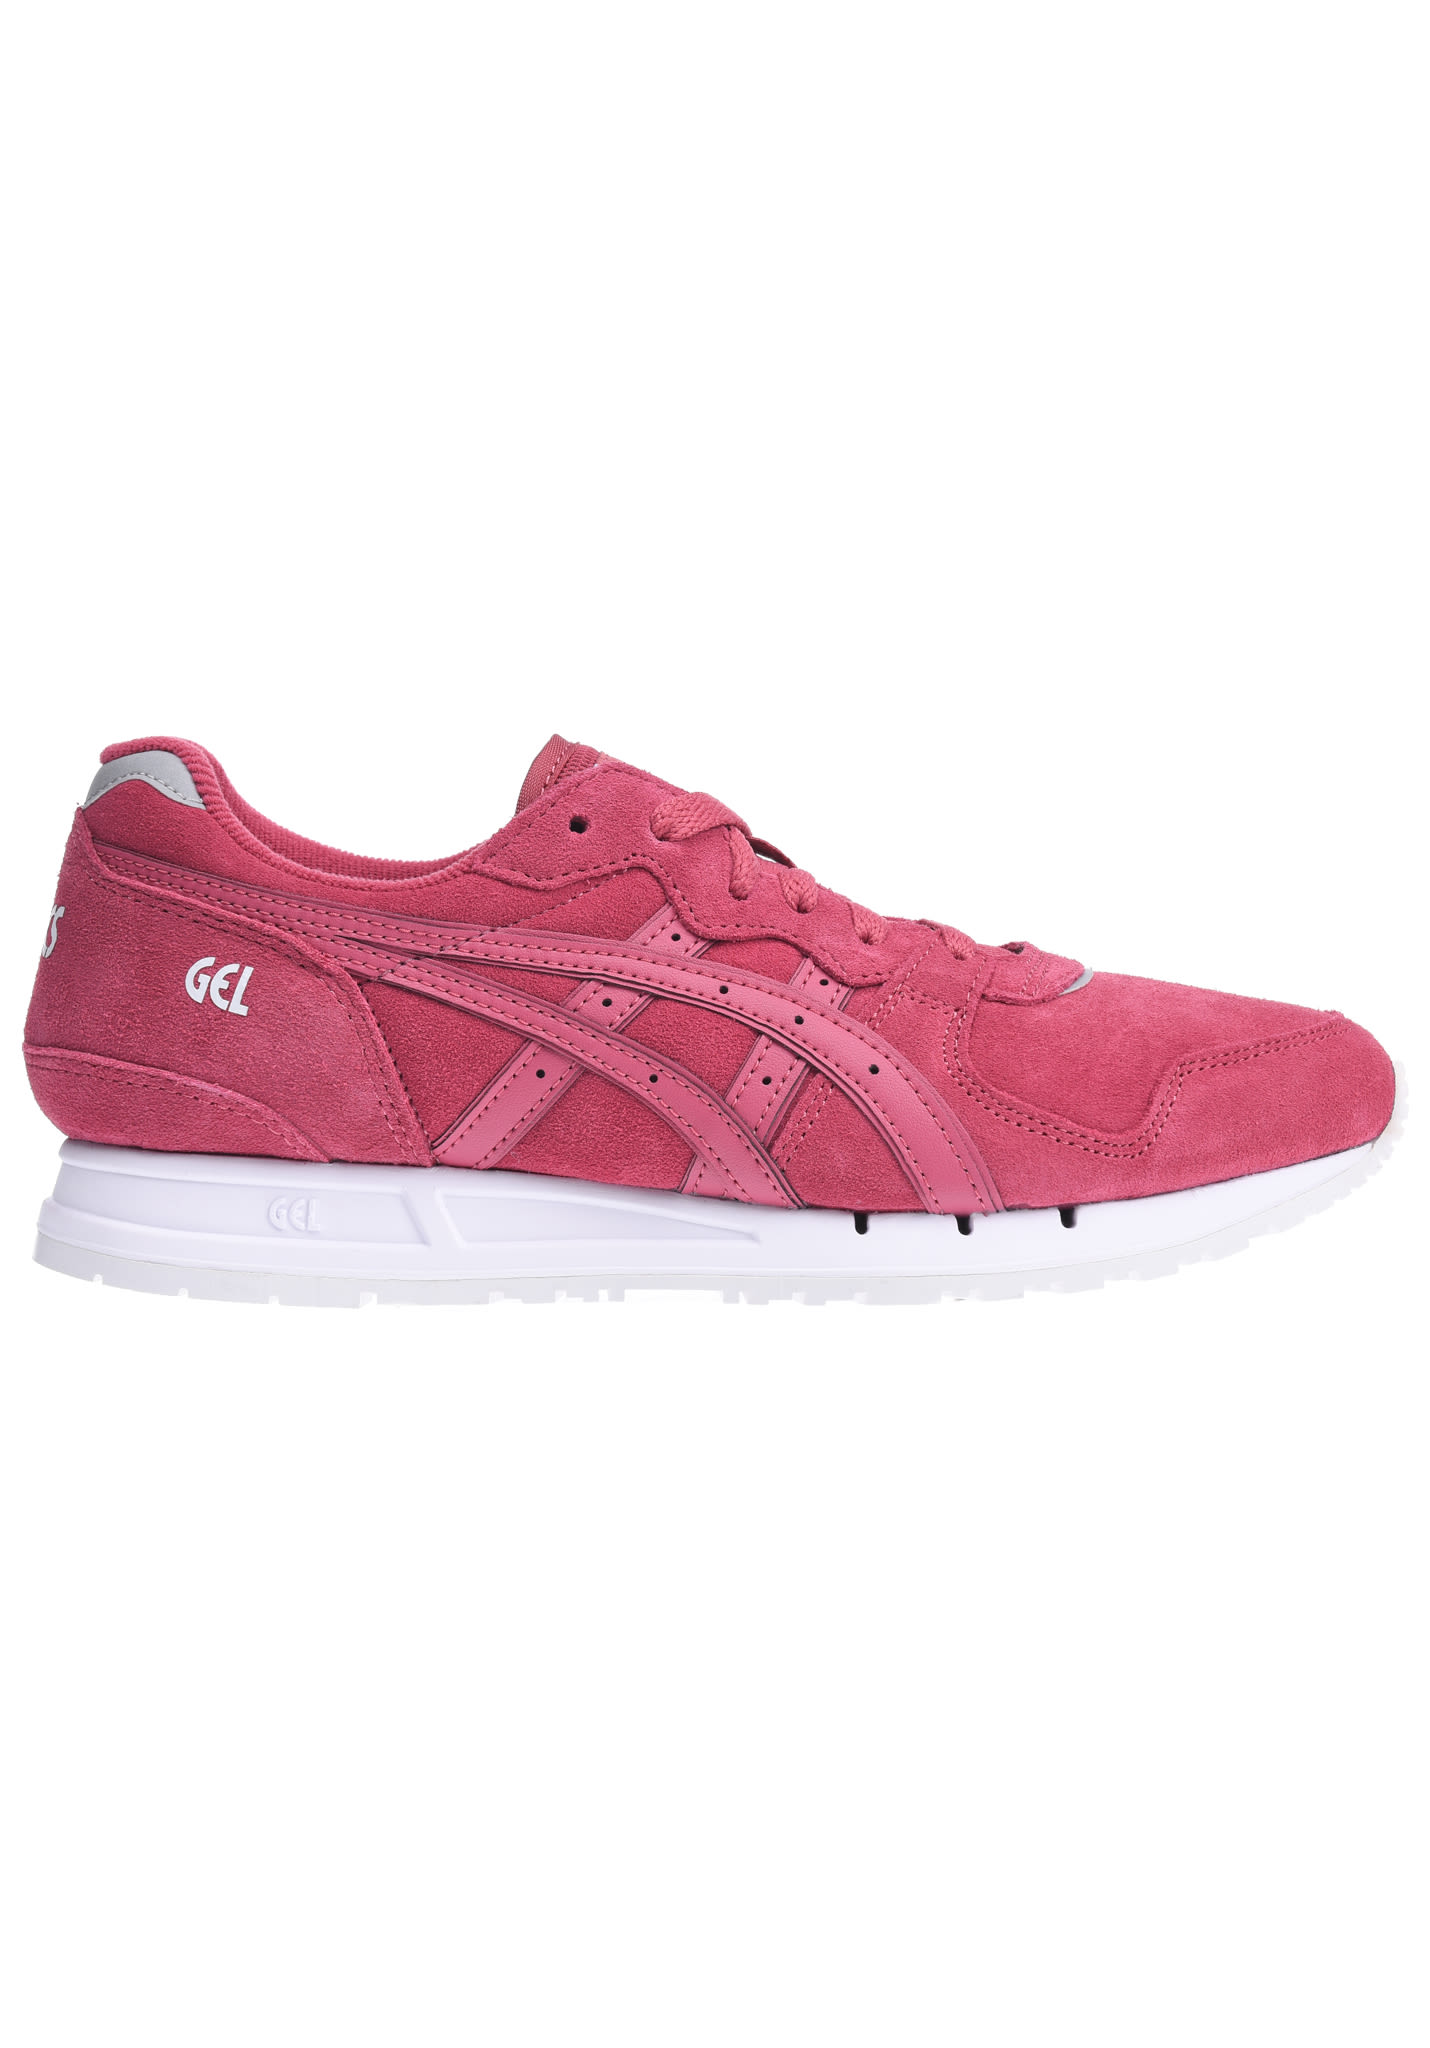 ASICS Tiger Gel-Movimentum - Sneaker für Damen - Pink